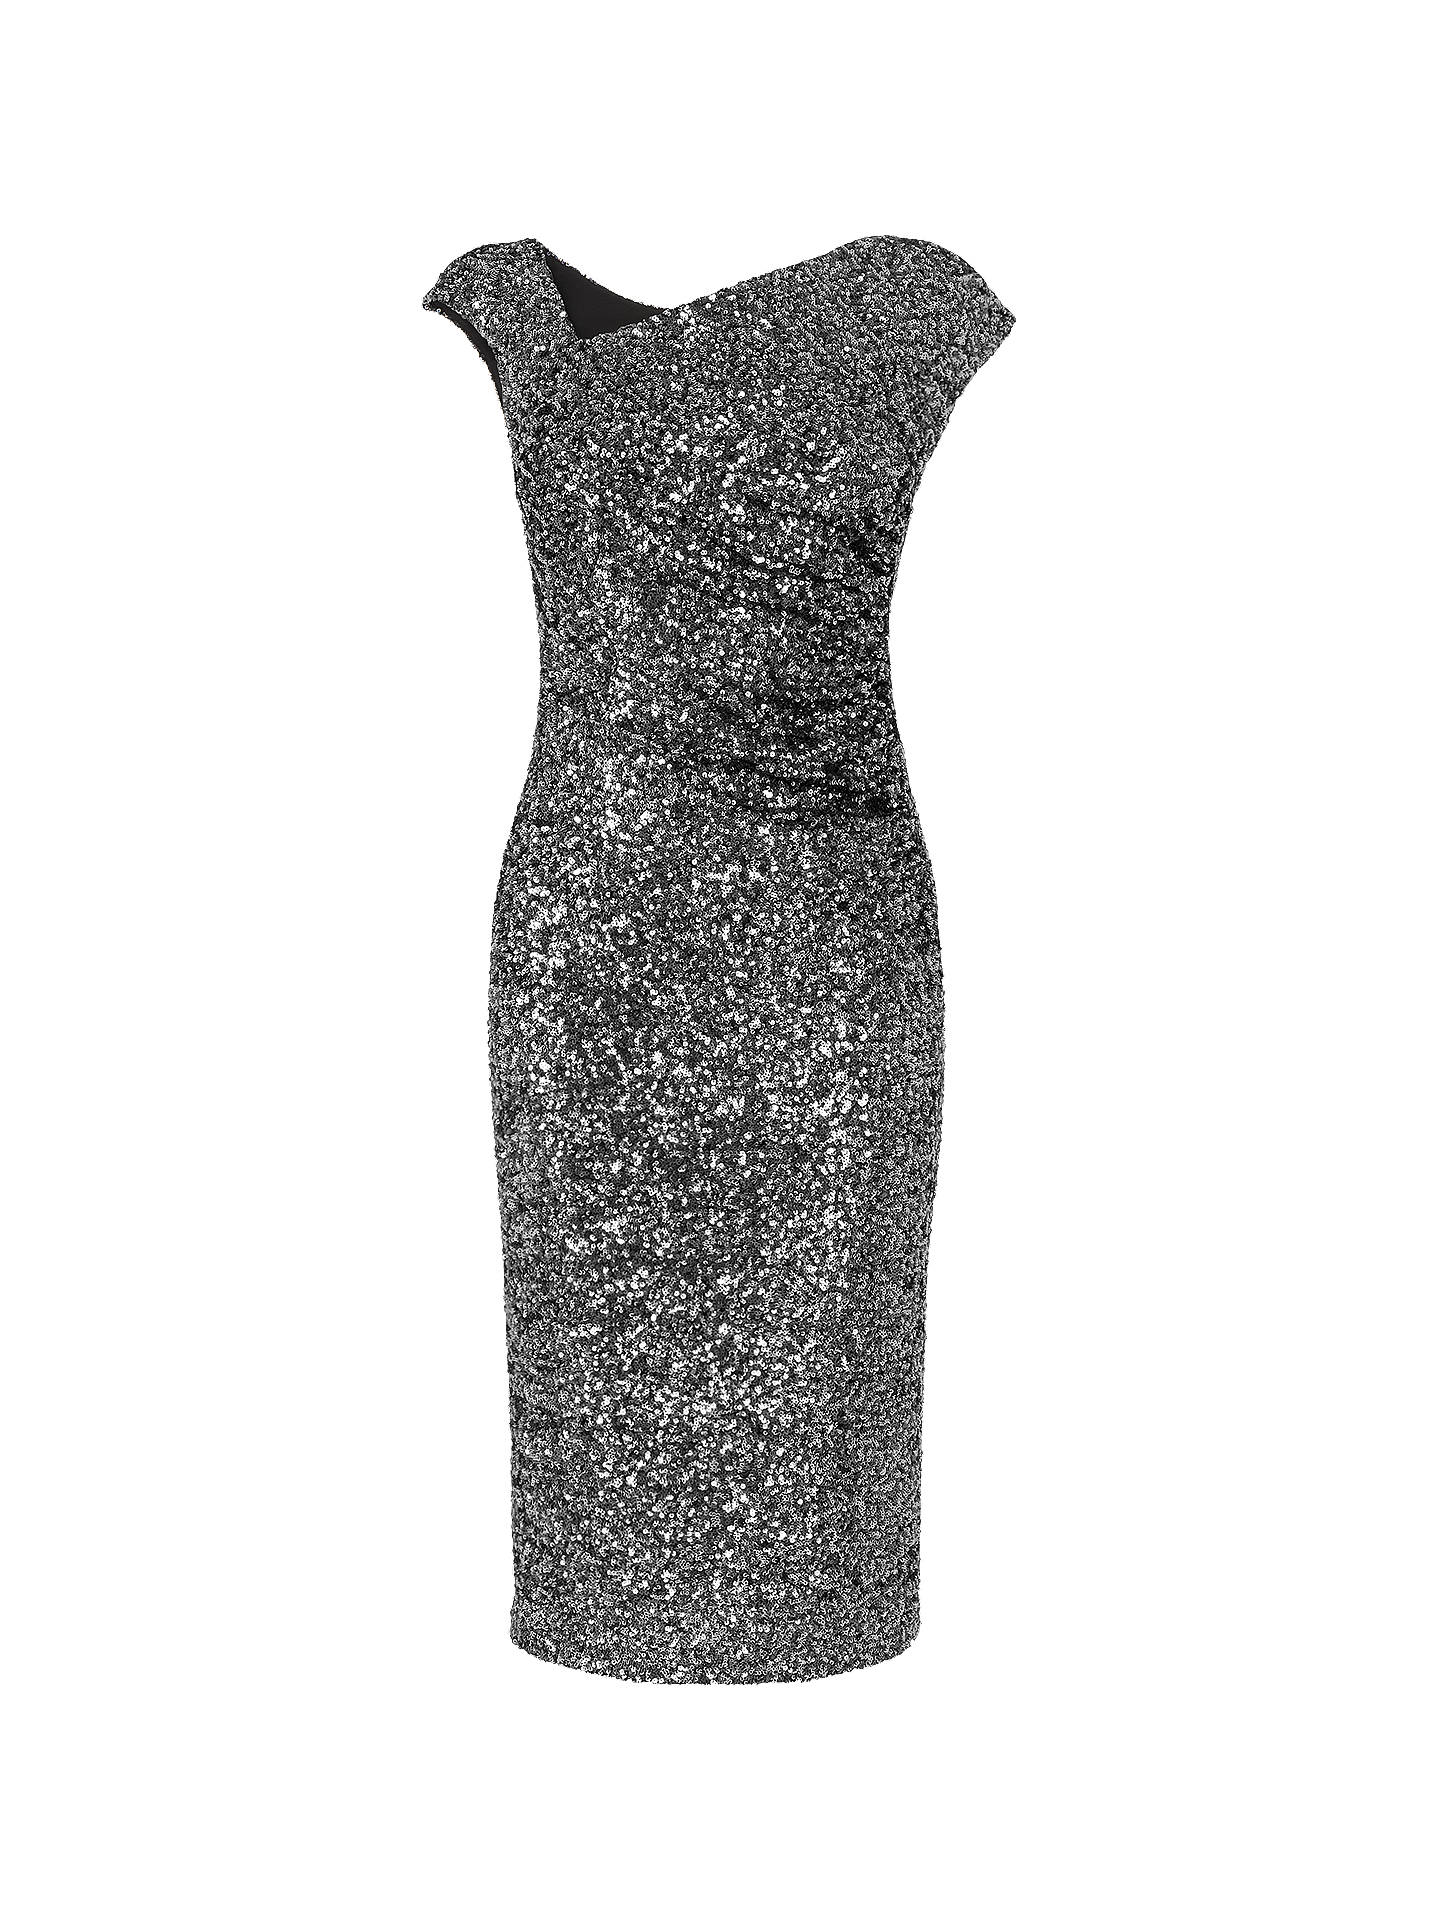 ba1e96a2 Buy L.K. Bennett Jazz Sequin Dress, Silver, 6 Online at johnlewis.com ...